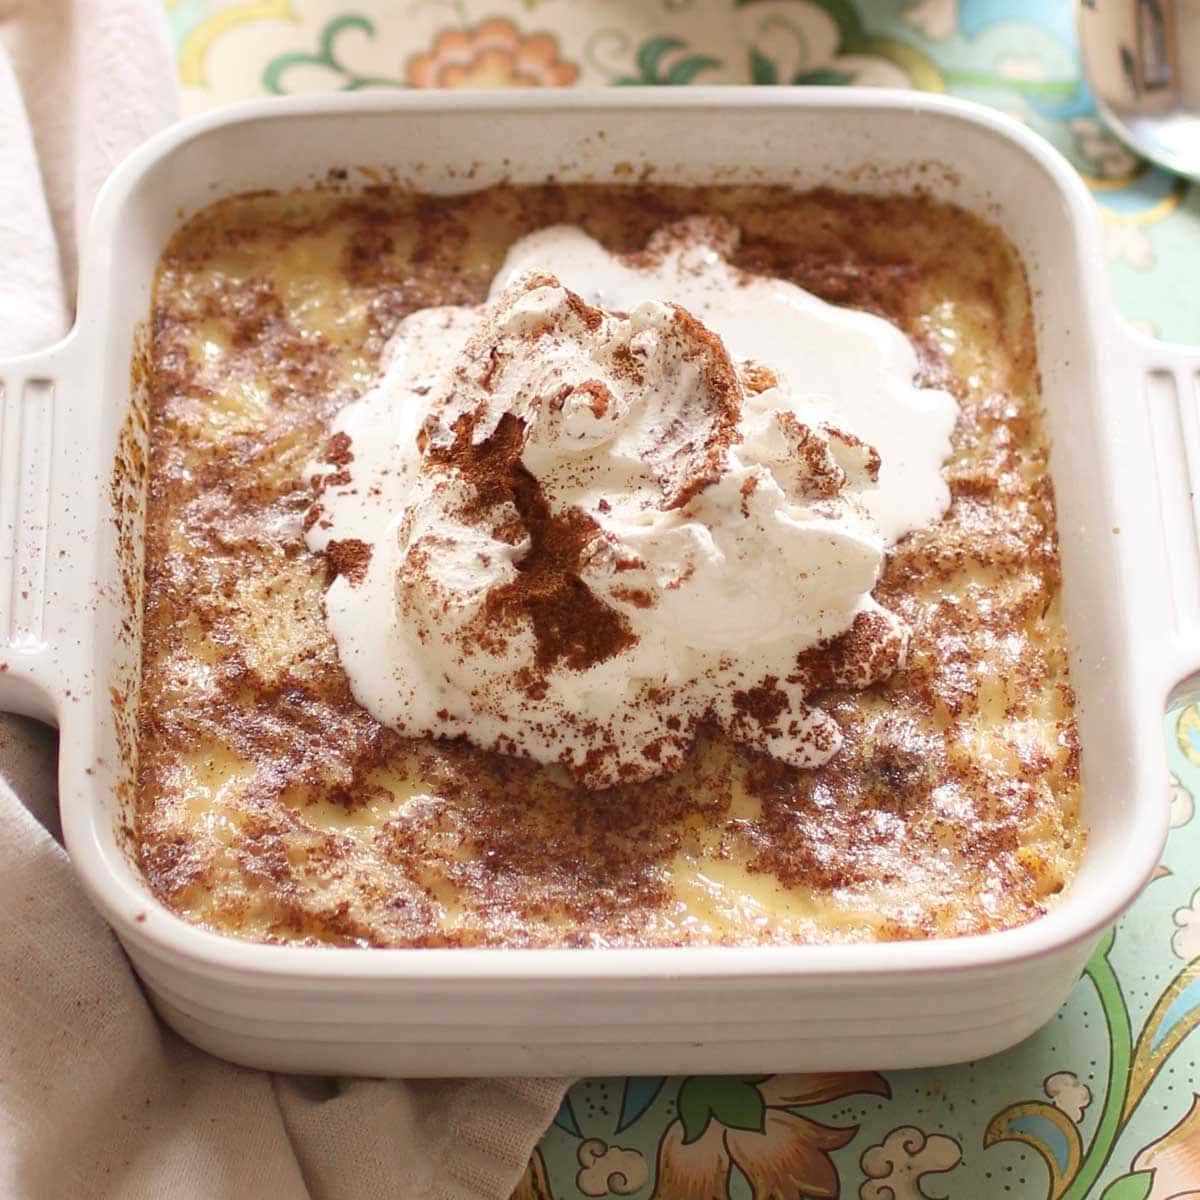 Baked rice pudding topped with whipped cream and ground cinnamon  in small baking dish